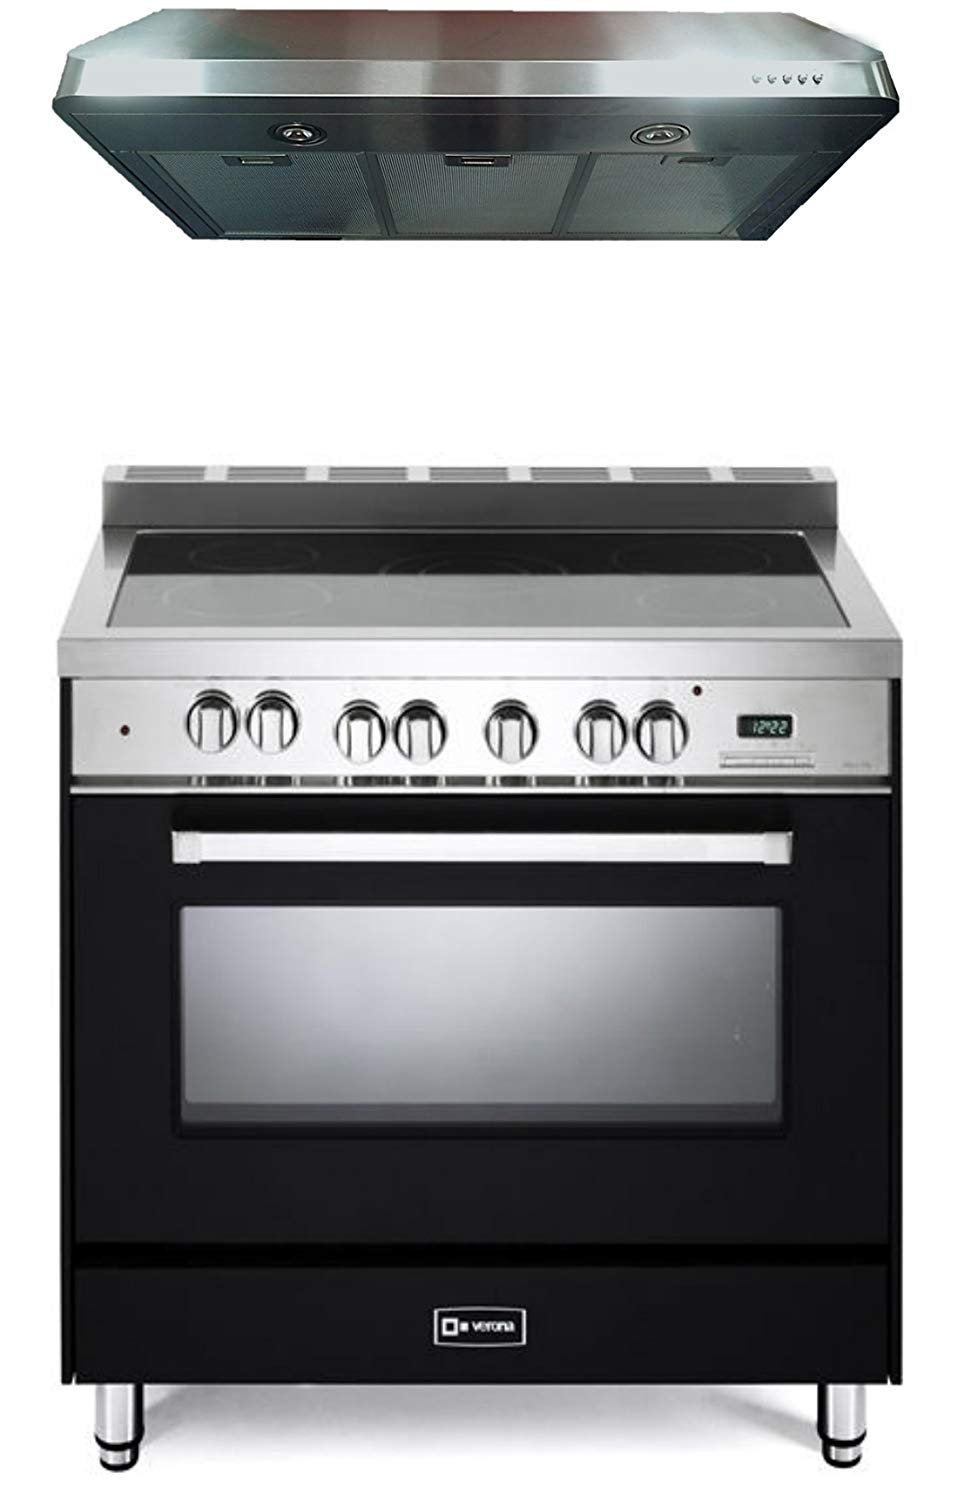 36 Electric Range >> Cheap 36 Electric Range Find 36 Electric Range Deals On